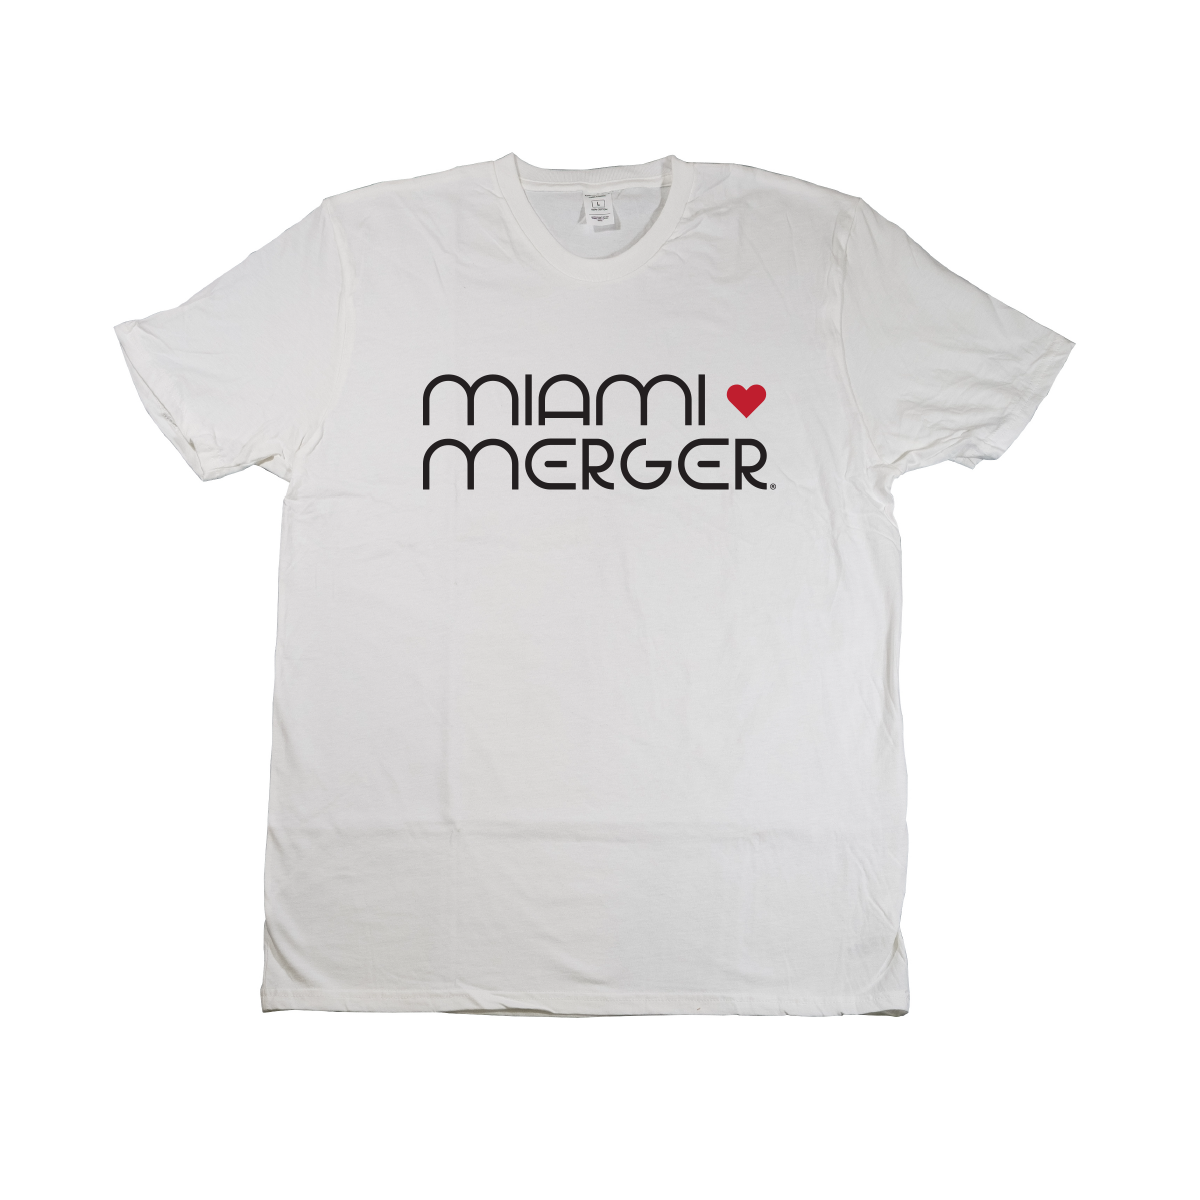 MIAMI UNIVERSITY Redhawks Miami Merger 80s Retro Crewneck Tee